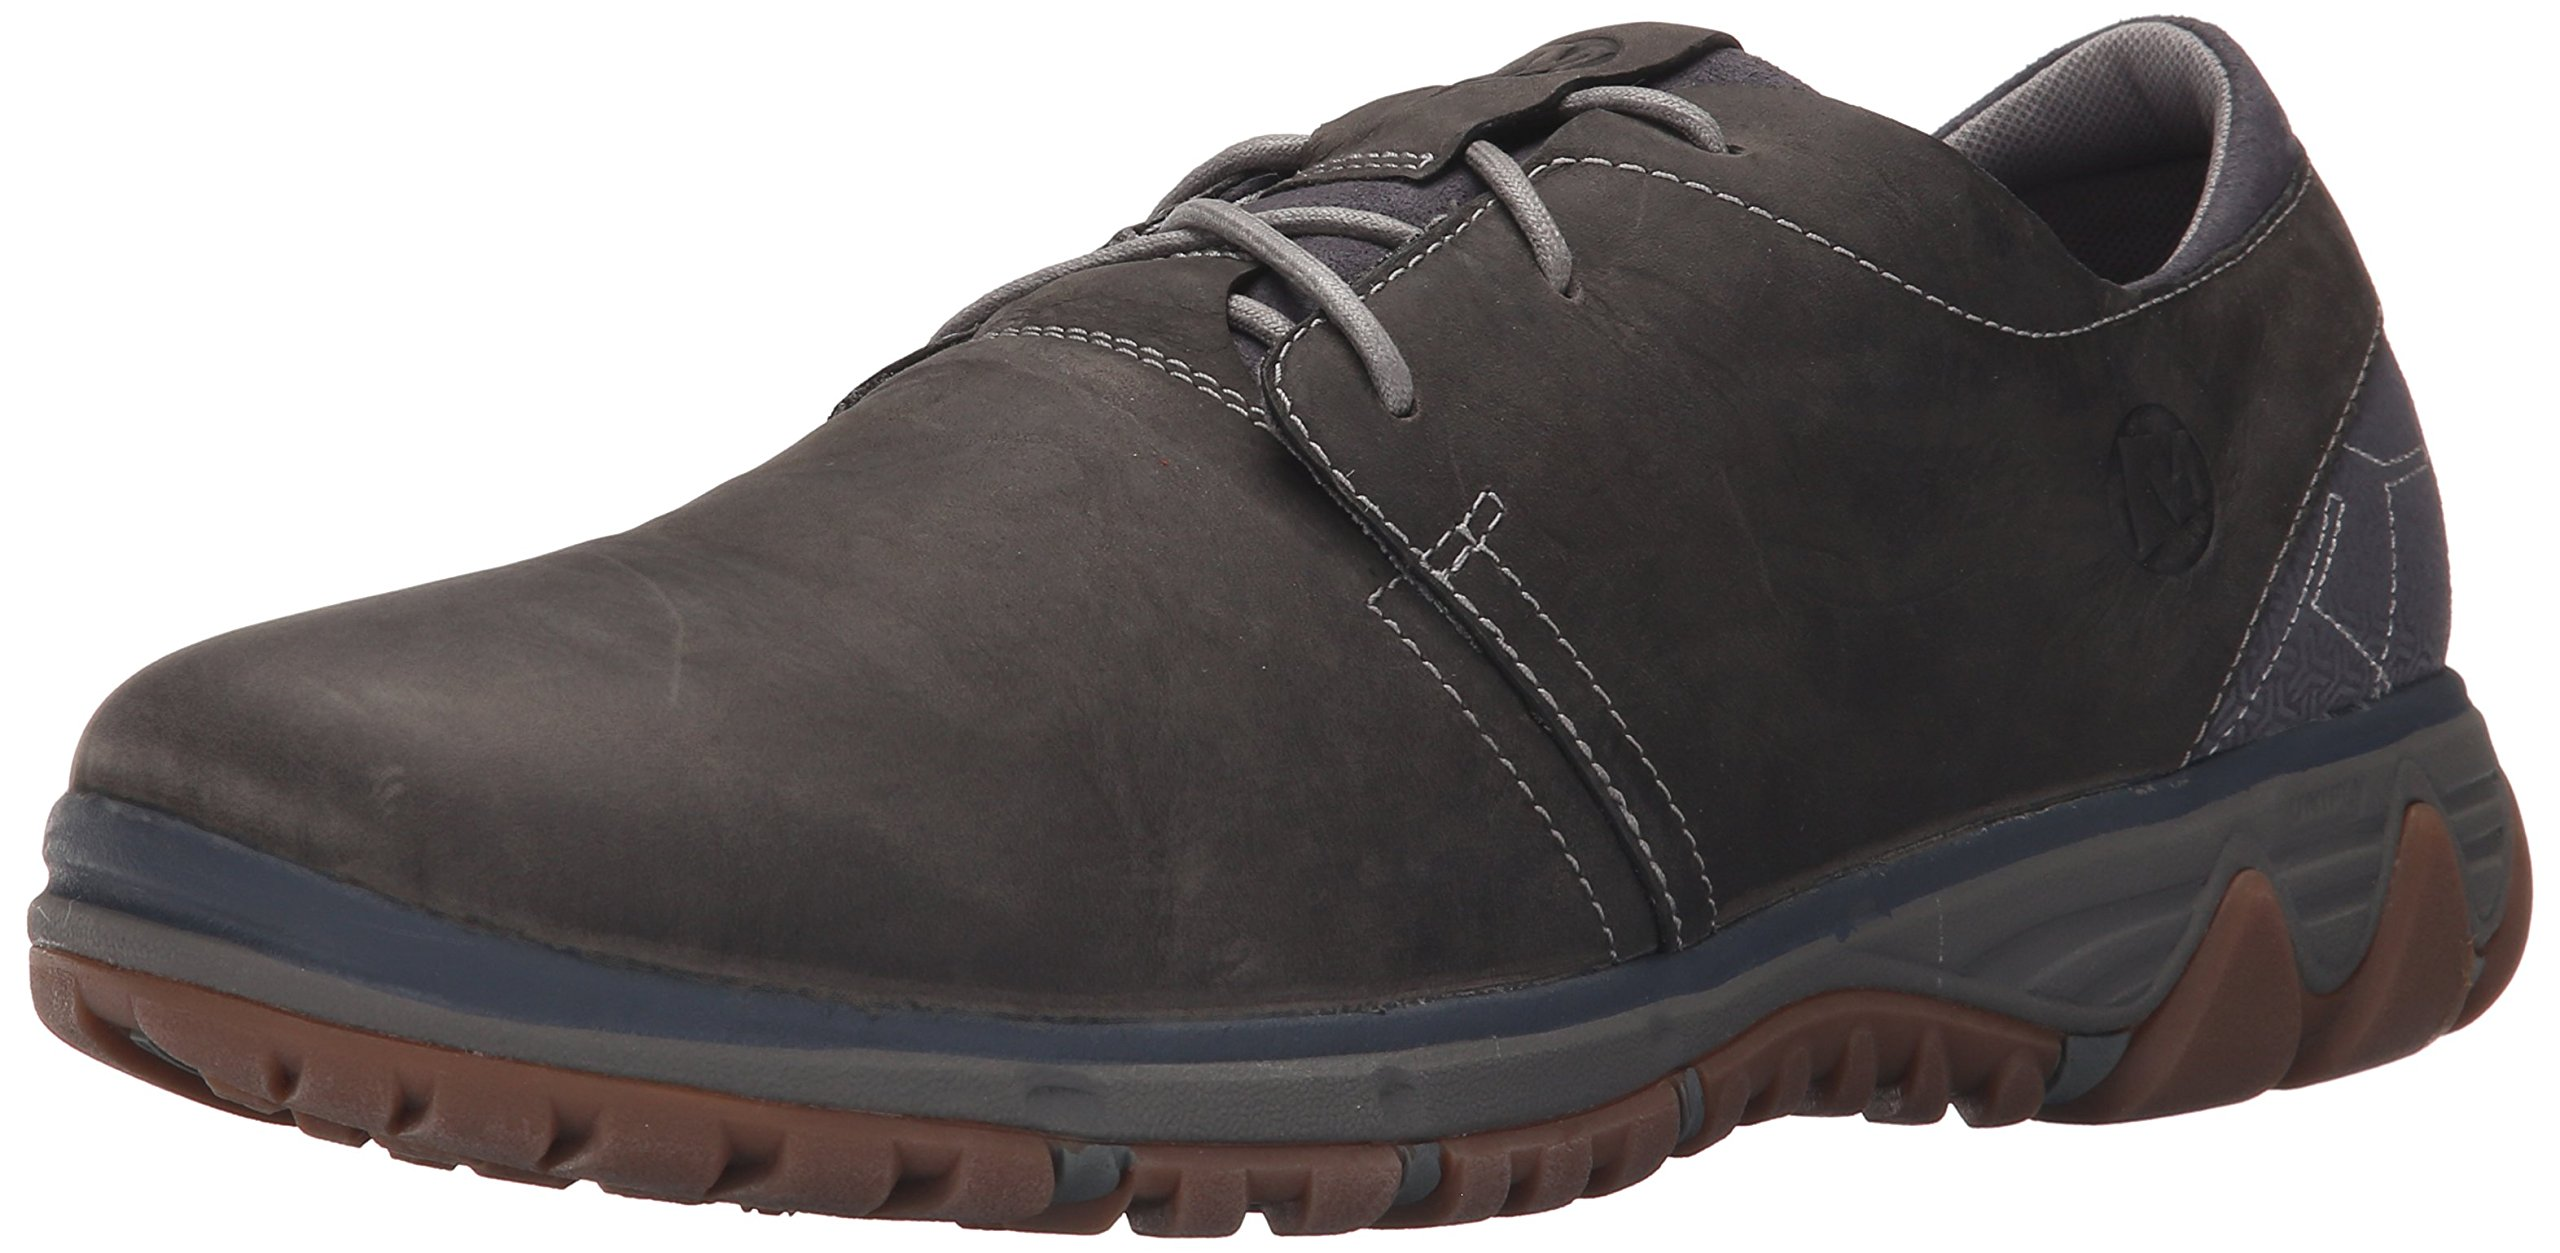 Merrell Men's All Out Blazer Lace Shoe, Pewter, 11 M US